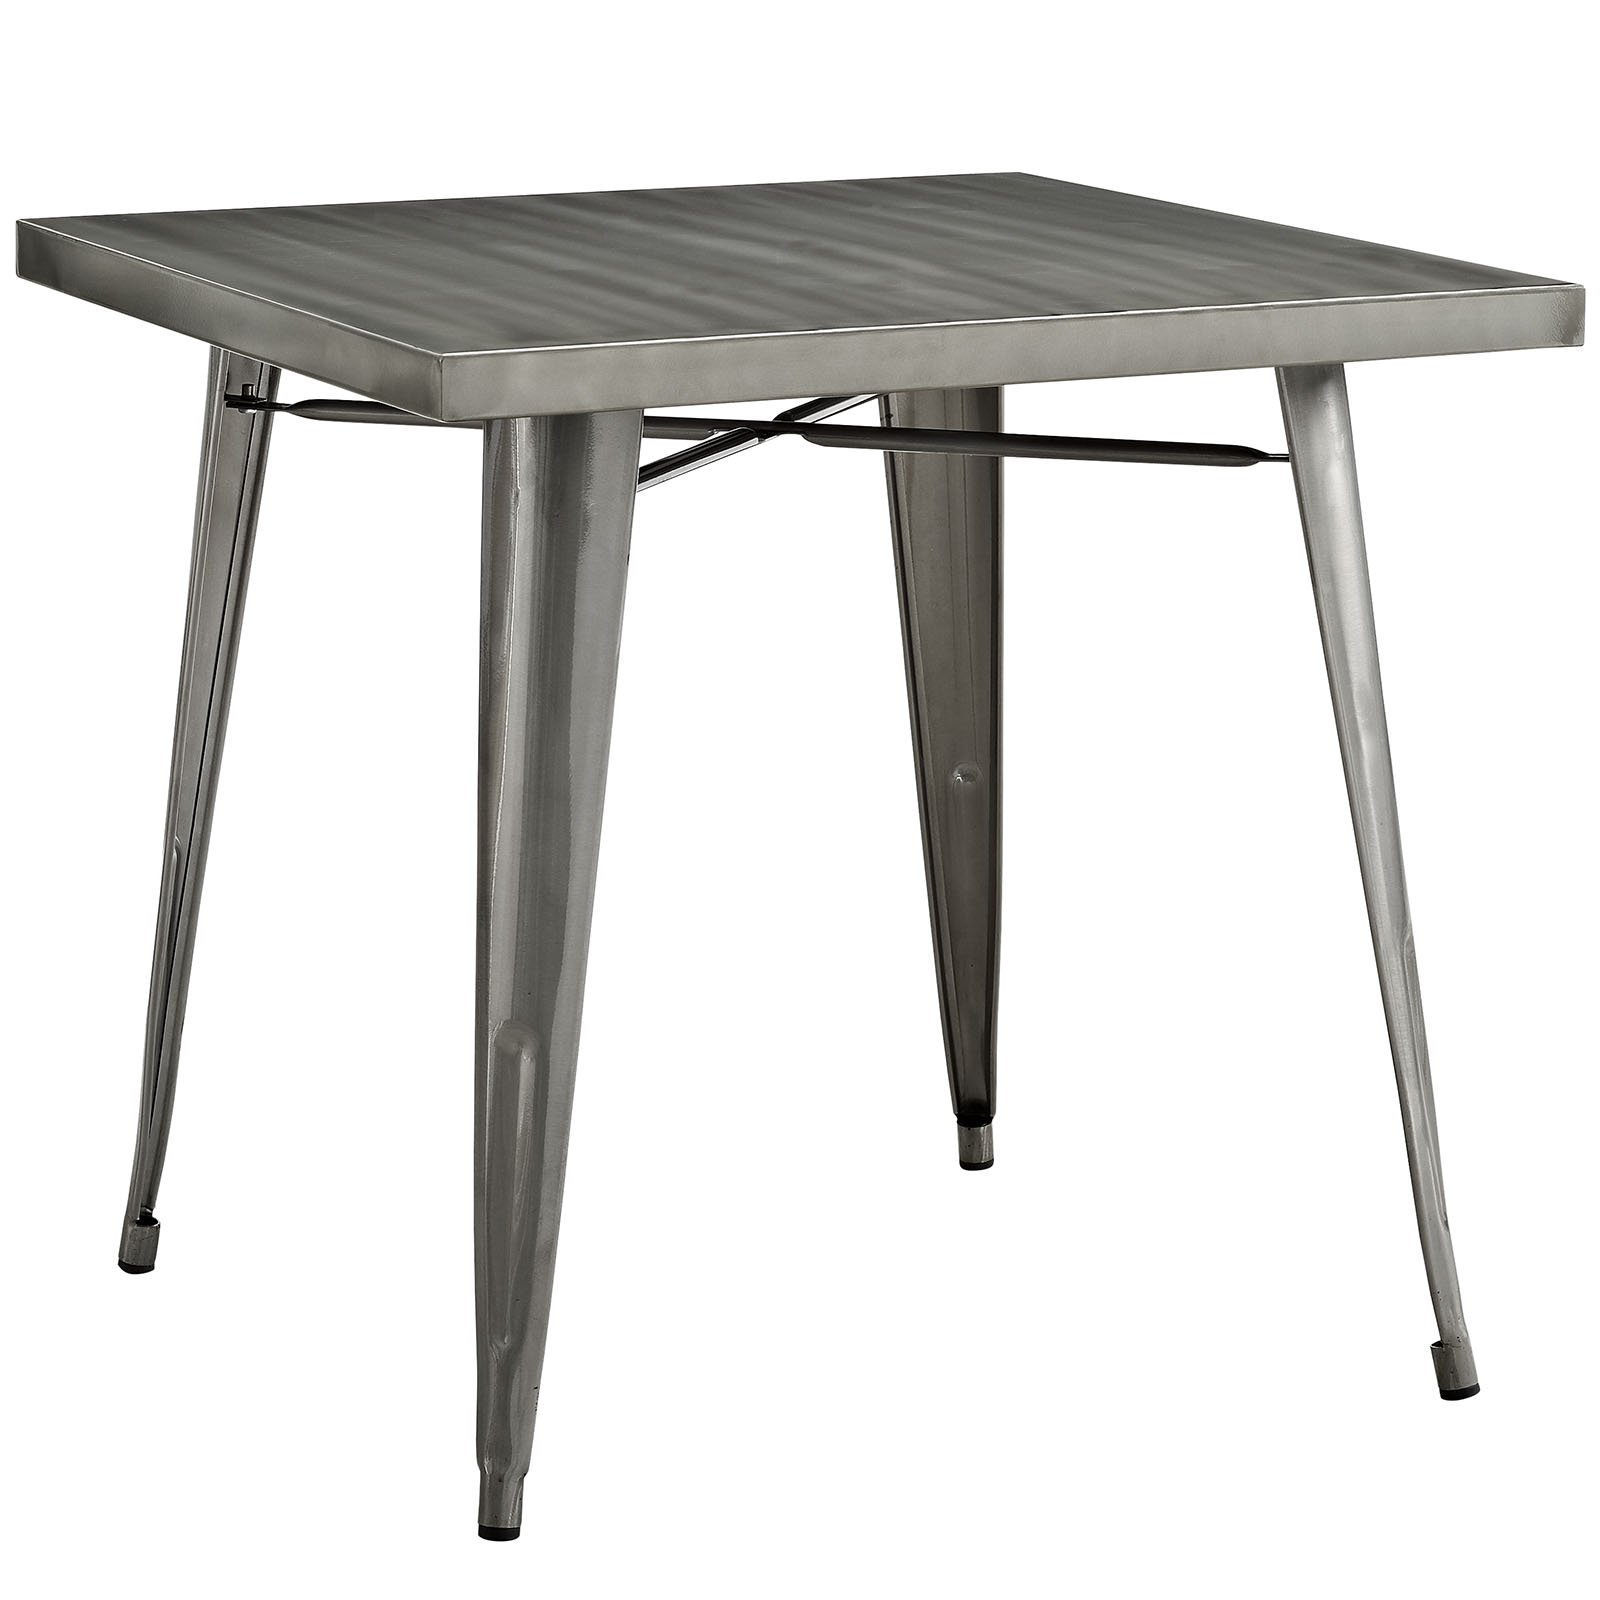 Modway Alacrity 60'' Rustic Modern Farmhouse Stainless Steel Metal Square Kitchen and Dining Room Table in Gunmetal by Modway